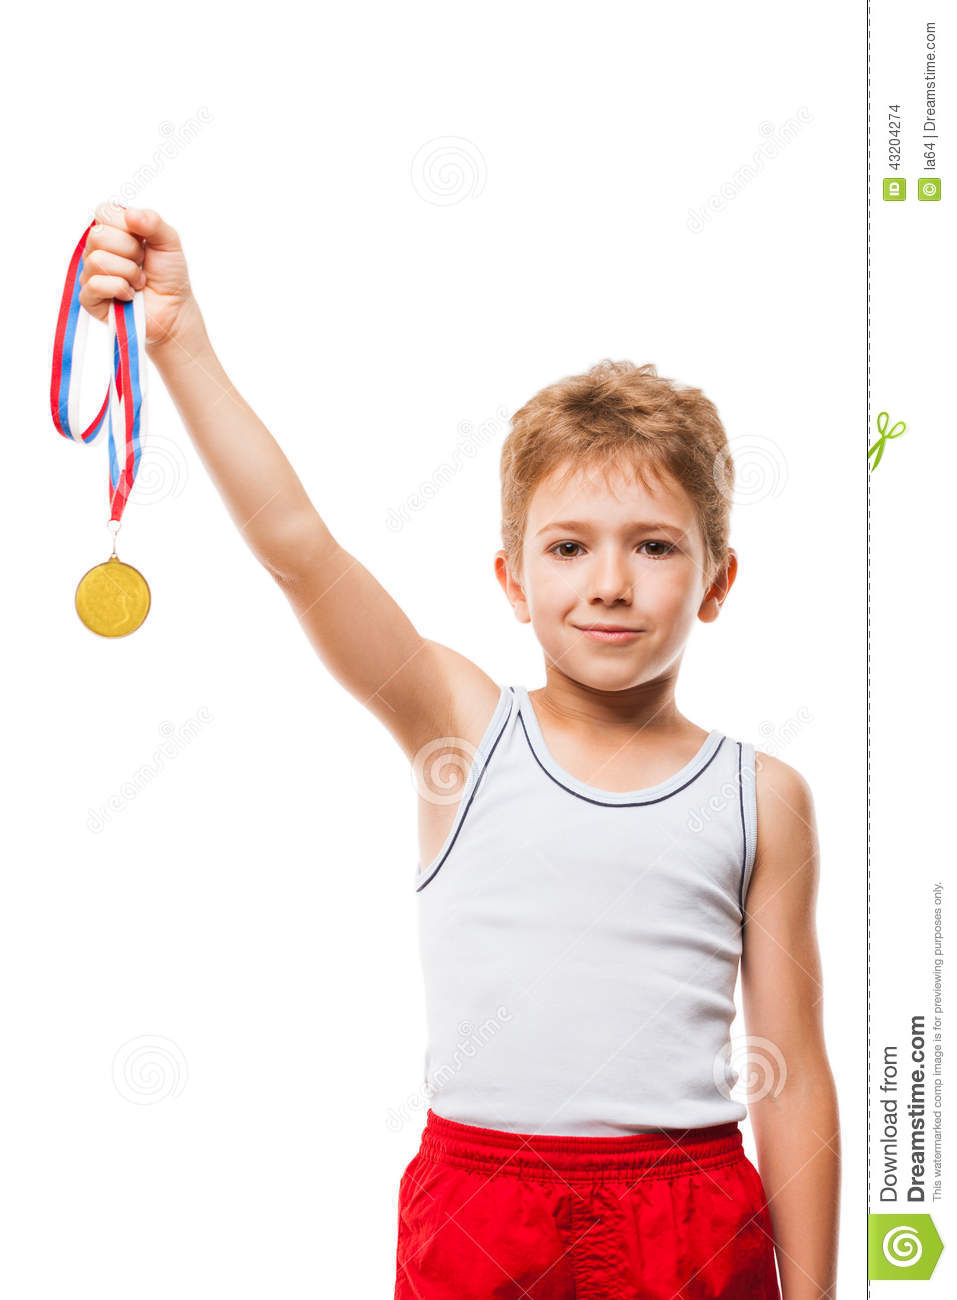 Smiling athlete champion child boy gesturing for victory triumph stock